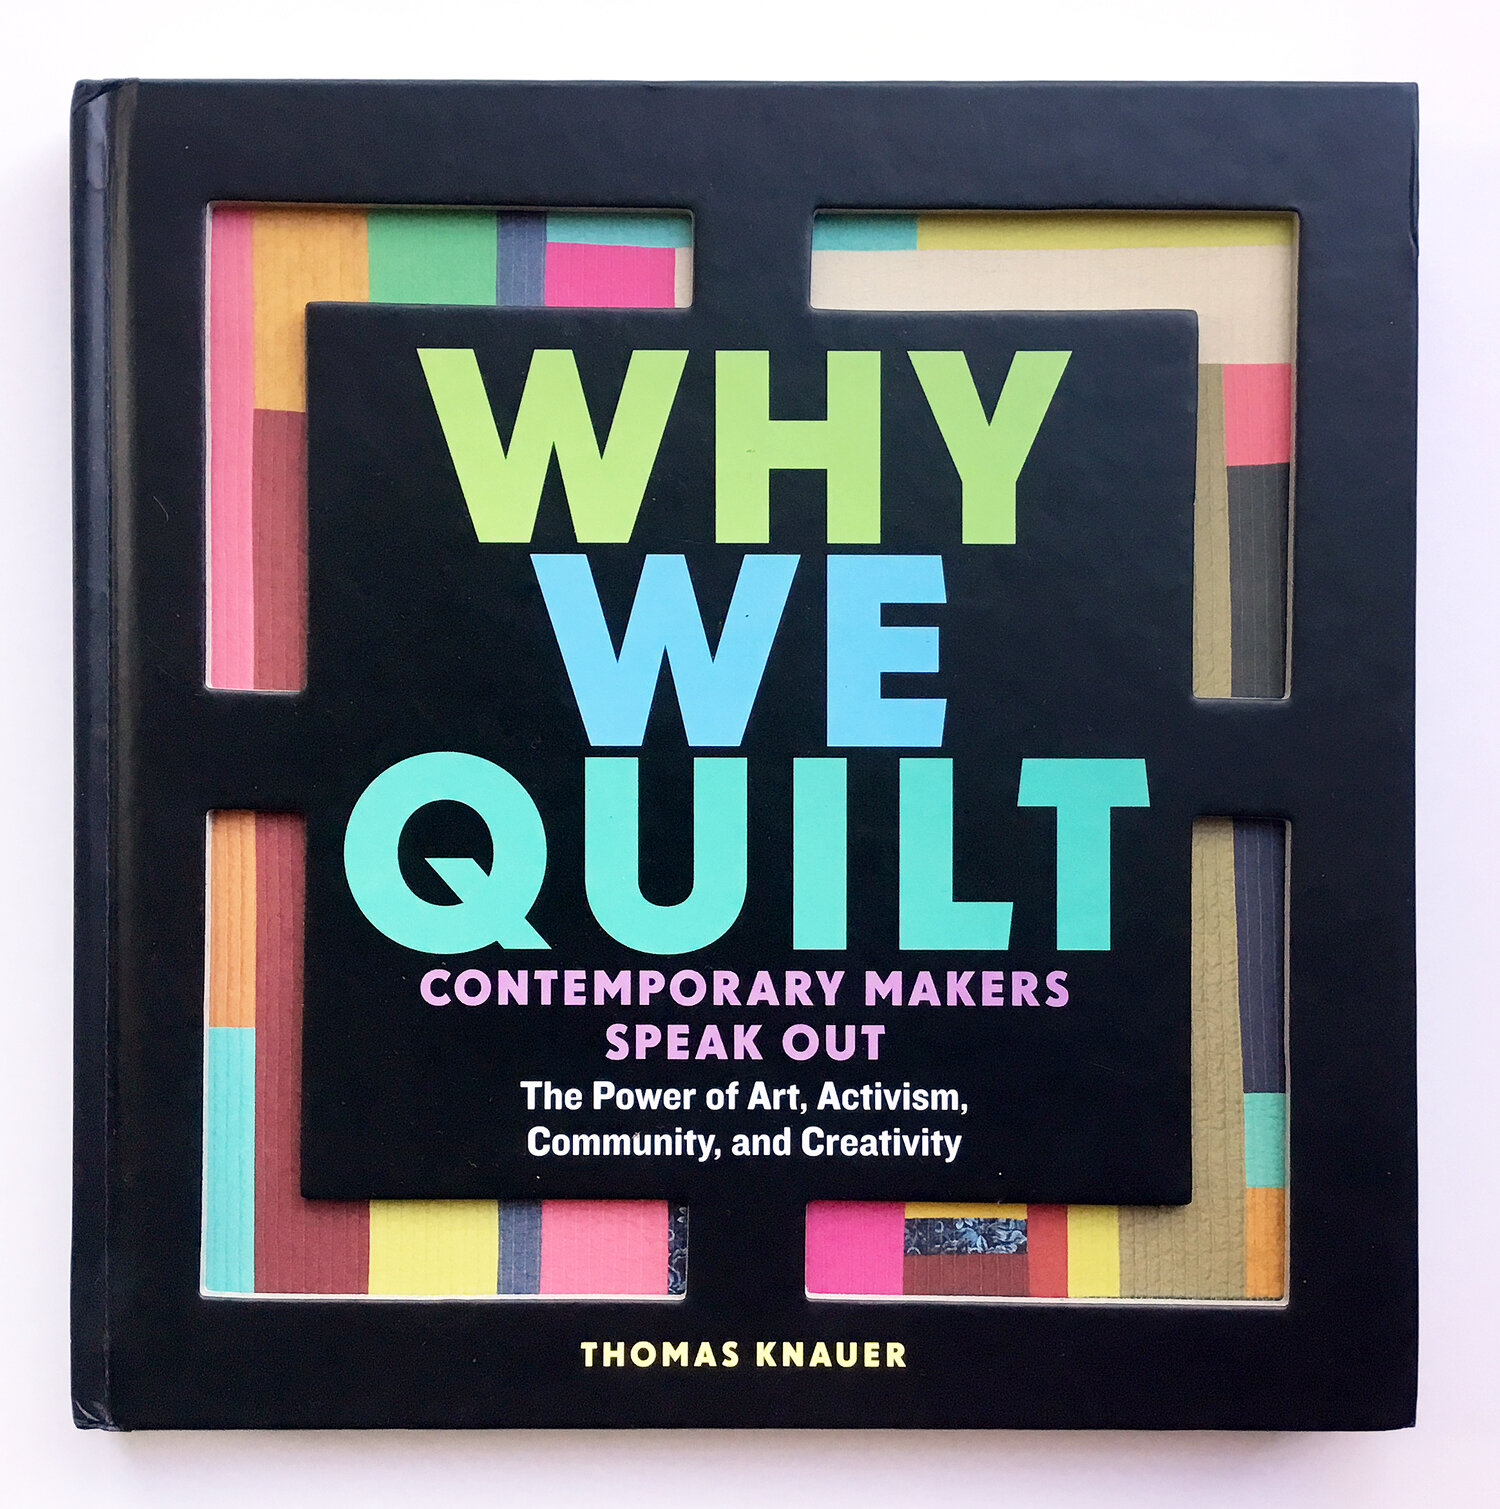 Thomas Knauer's Why We Quilt delves into an intriguing question in the context of our current culture and features 40 contemporary quilters, including Brigitte Heitland of Zen Chic.